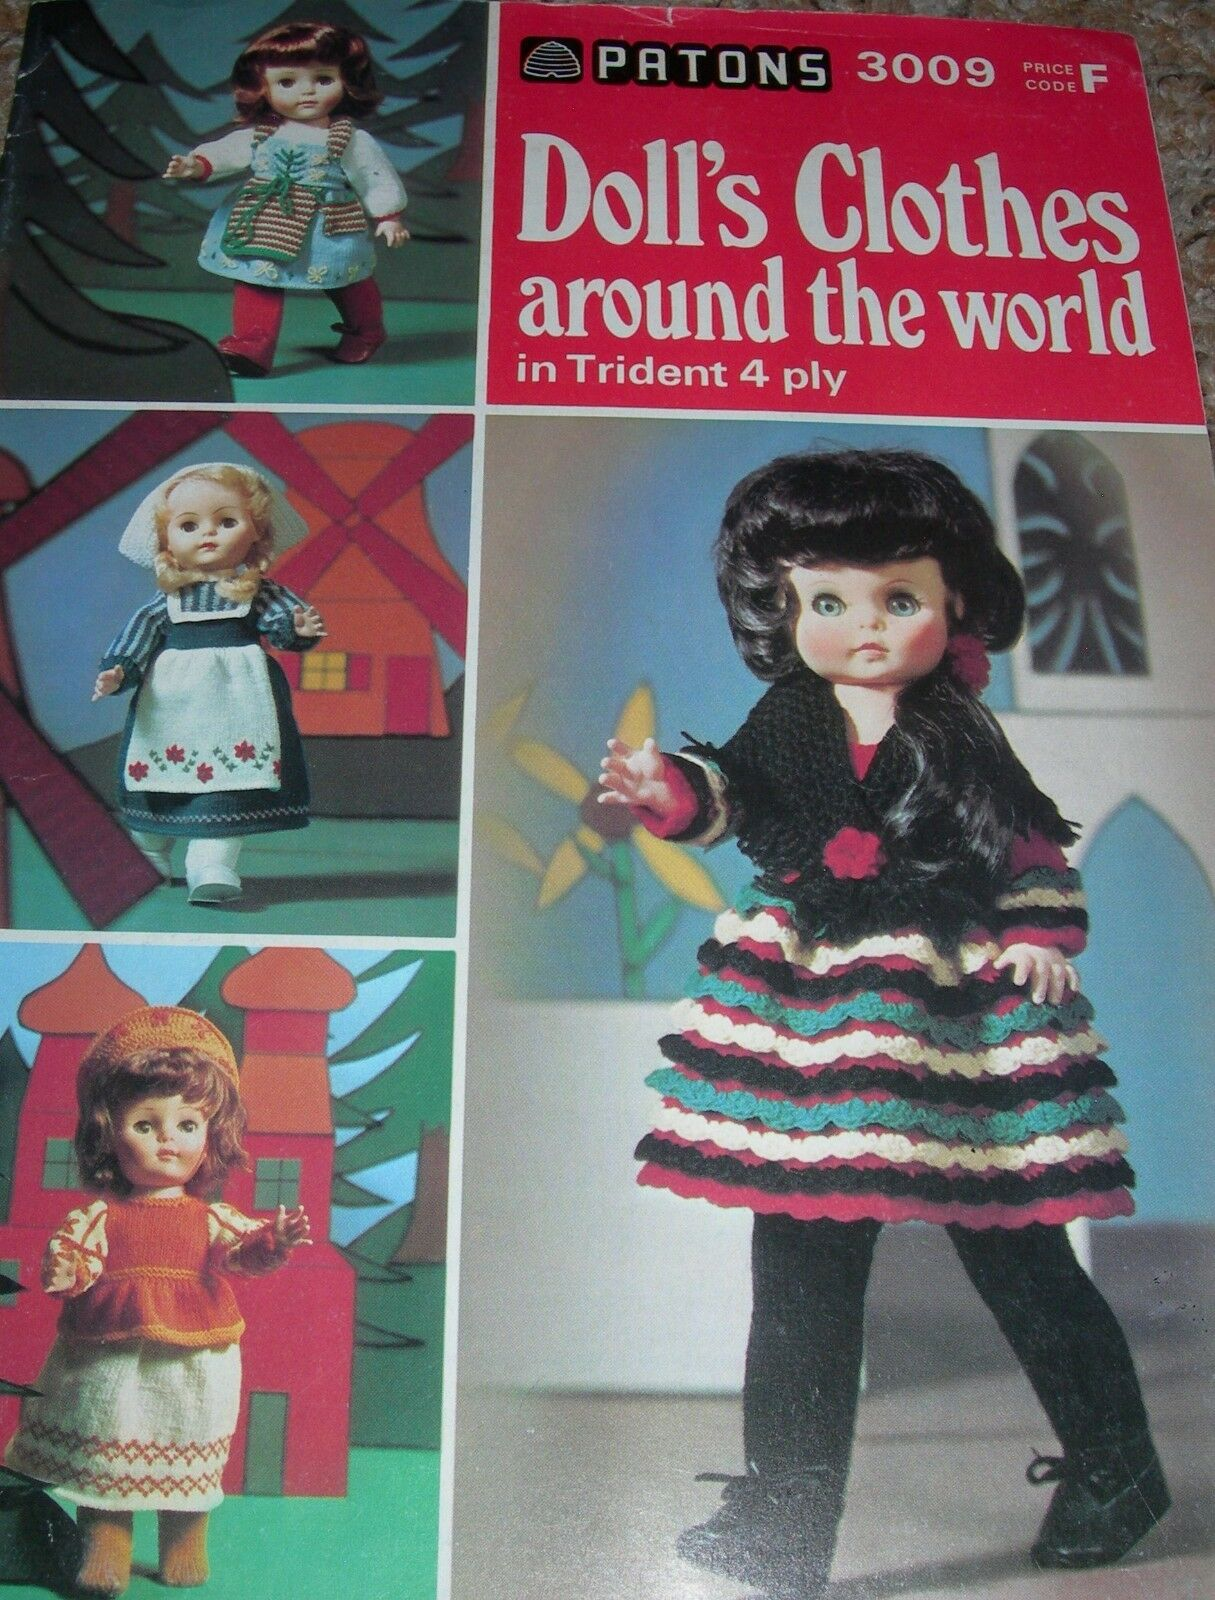 Dolls Clothes around the world 3009 Vintage Patons Knitting Pattern 4ply